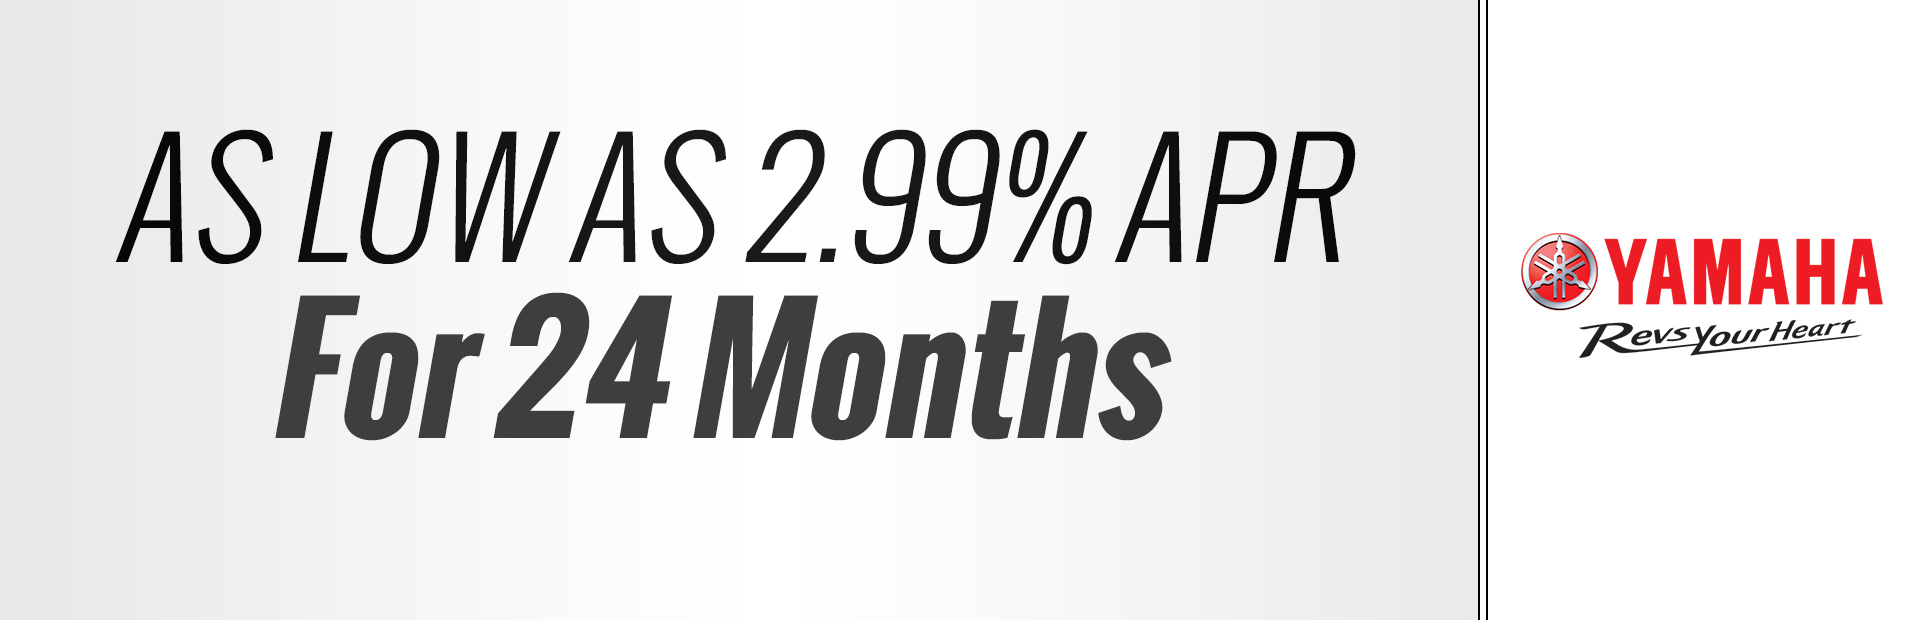 Yamaha: As Low As 2.99% APR For 24 Months